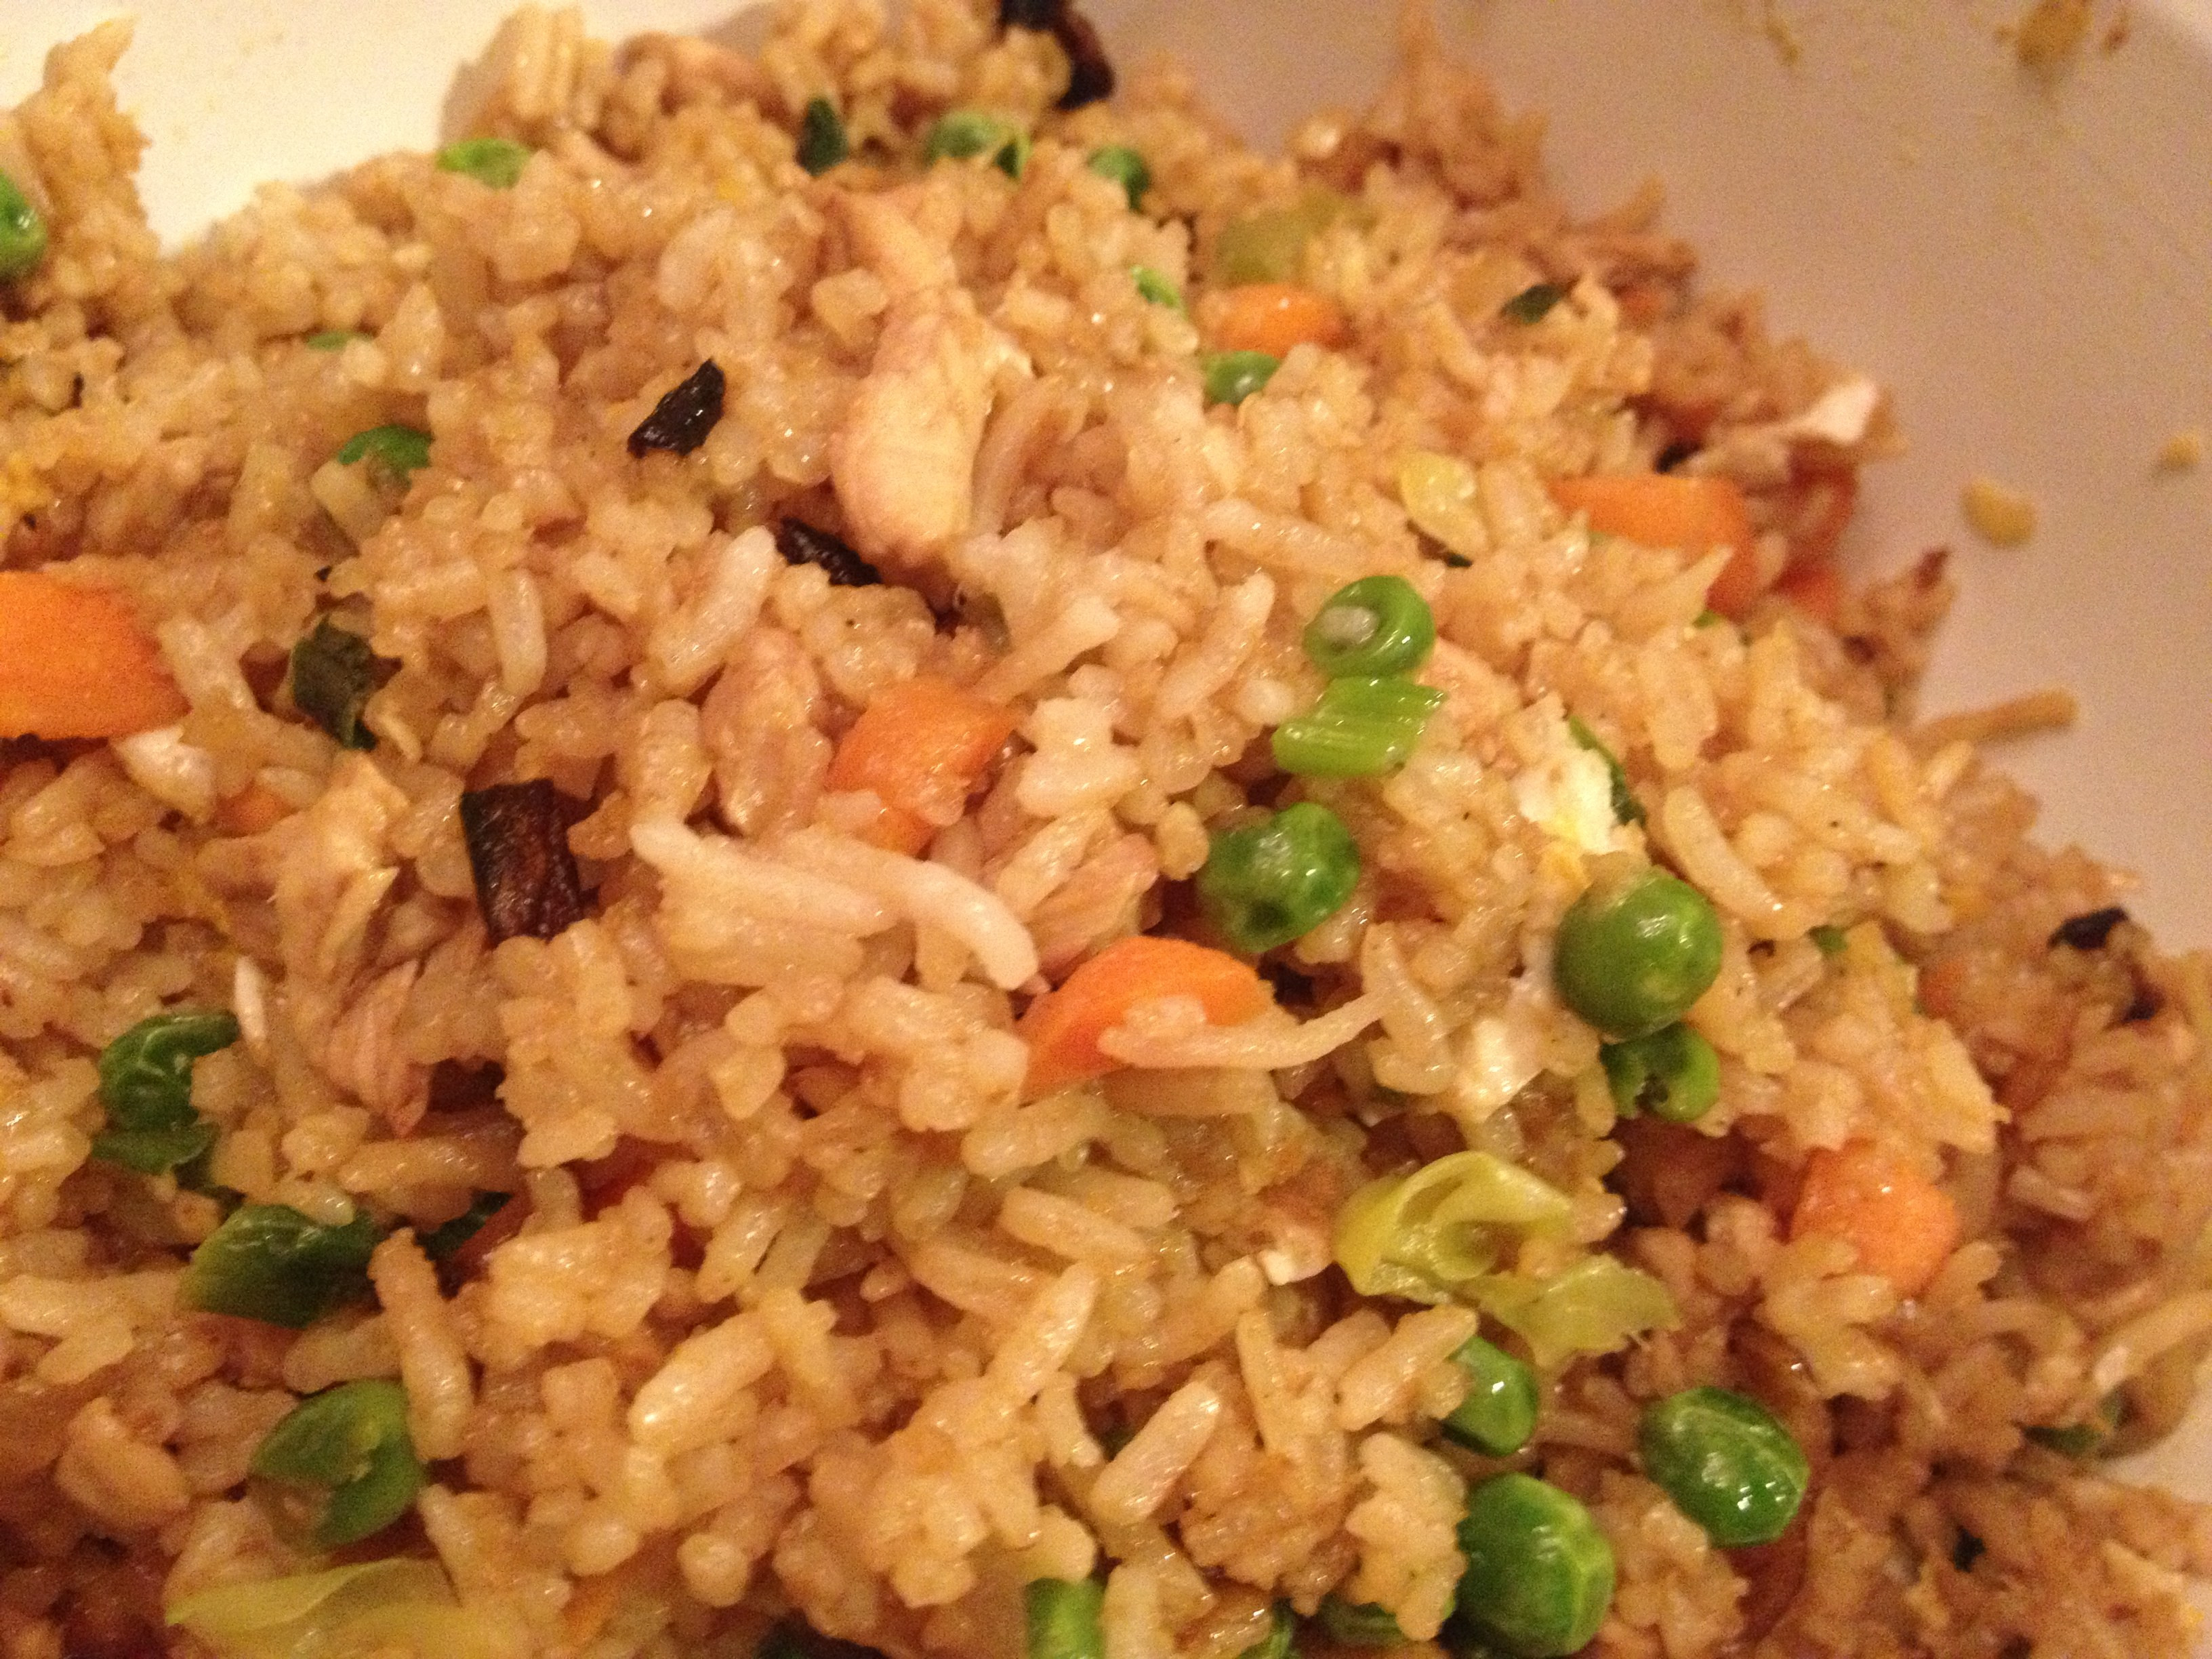 Authentic Chinese Fried Rice Recipe  Chinese Fried Rice Authentic Chinese Food 4 0 The